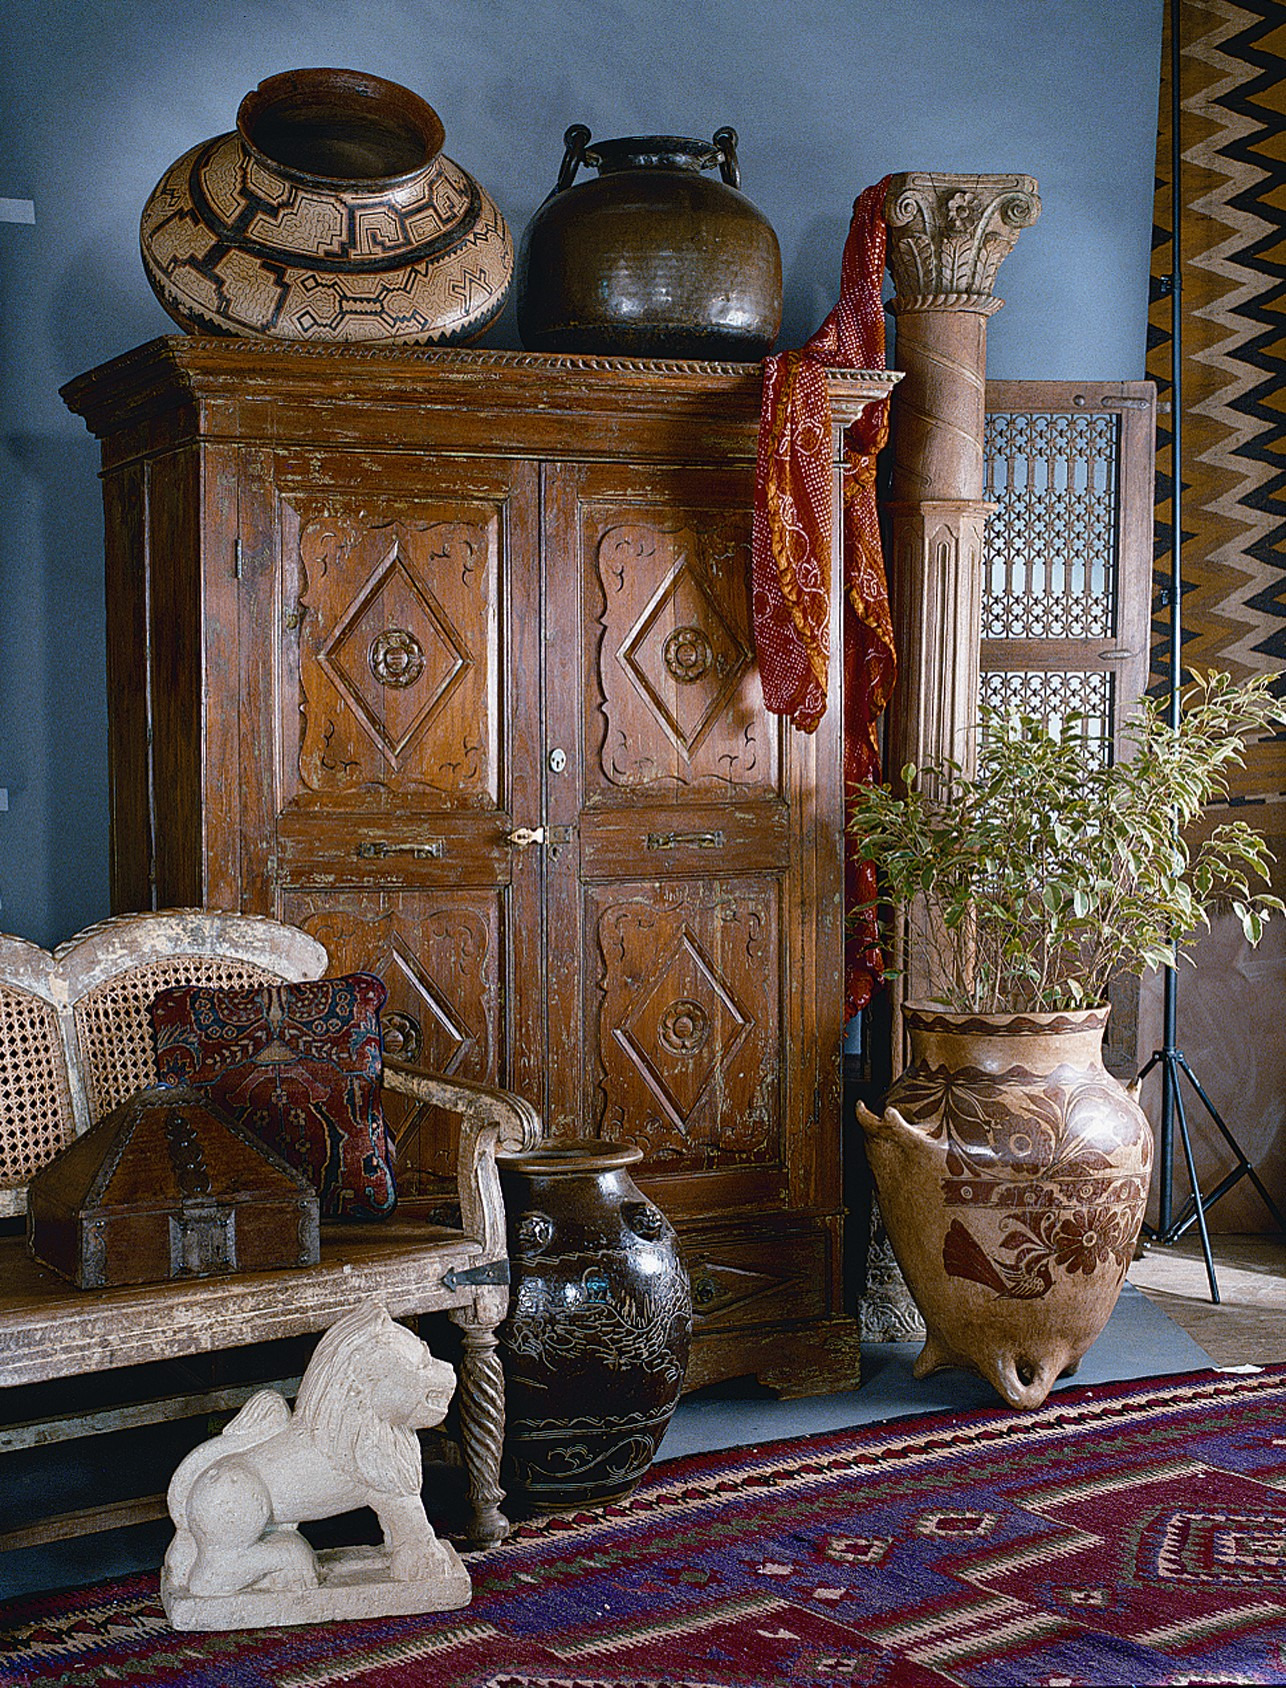 Antique Spanish Colonial Furniture Lovely Antique Furniture Architectural Elements Folk Art